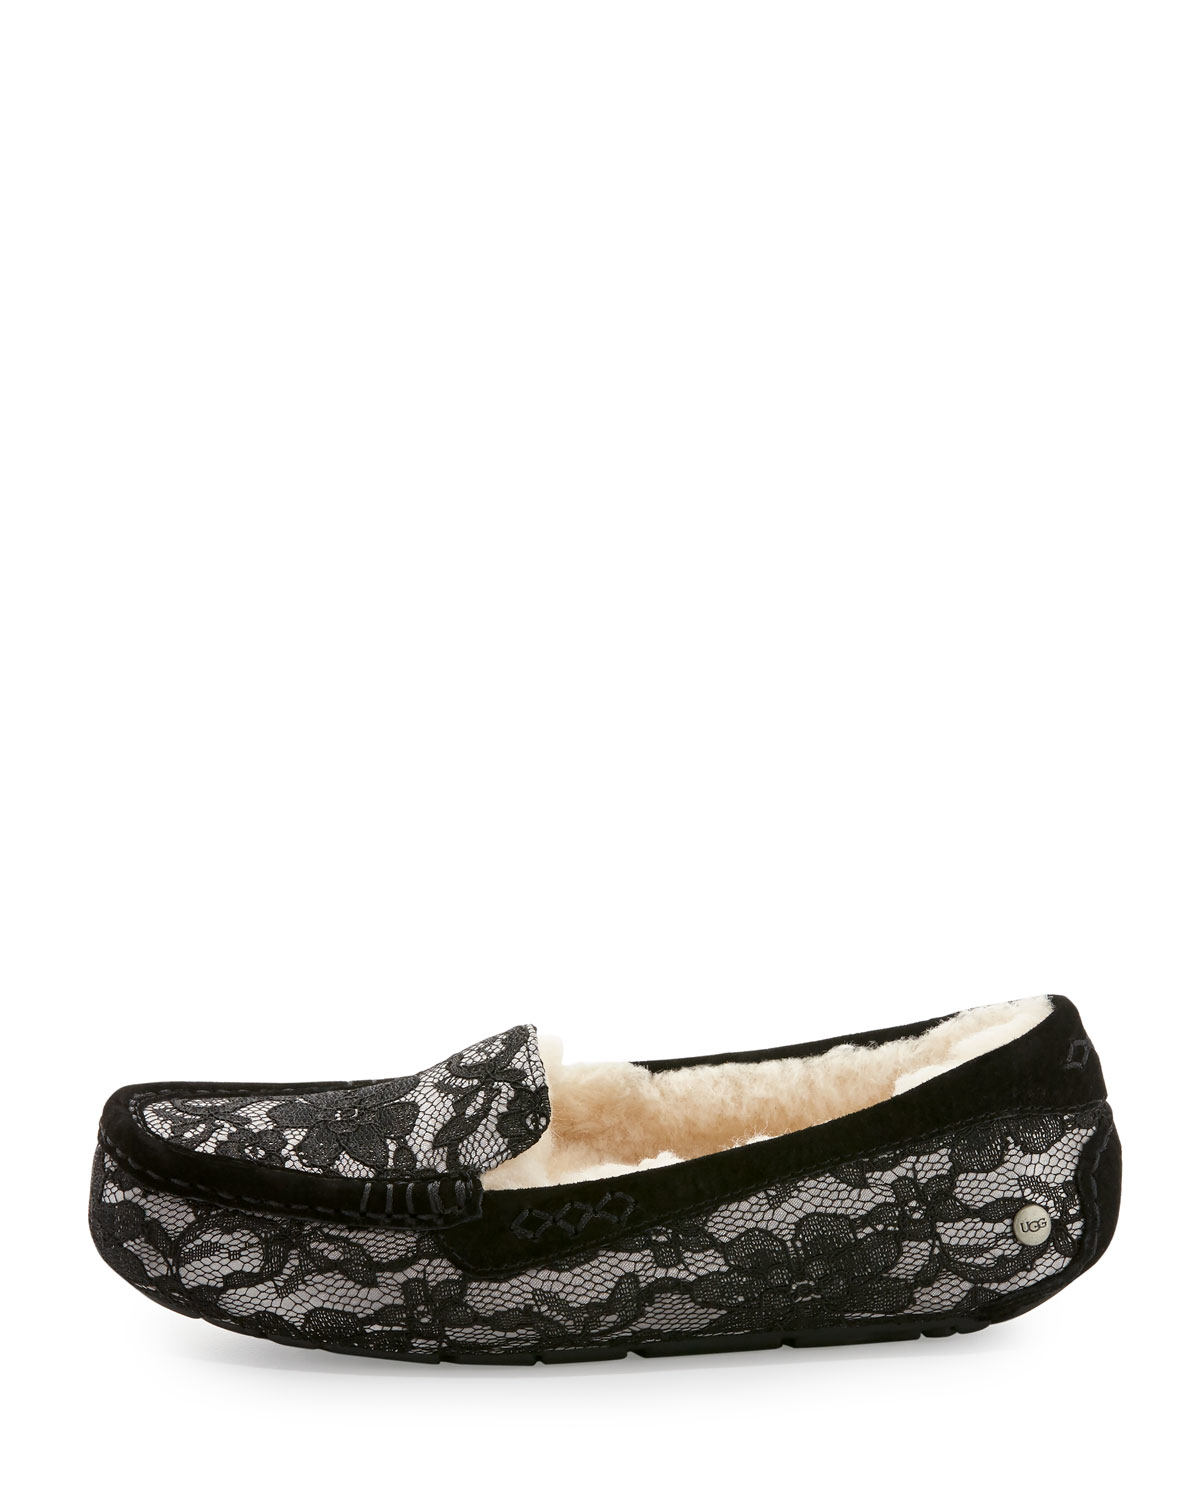 a295e765745 UGG Ansley Antoinette Lace Slippers in Black - Lyst